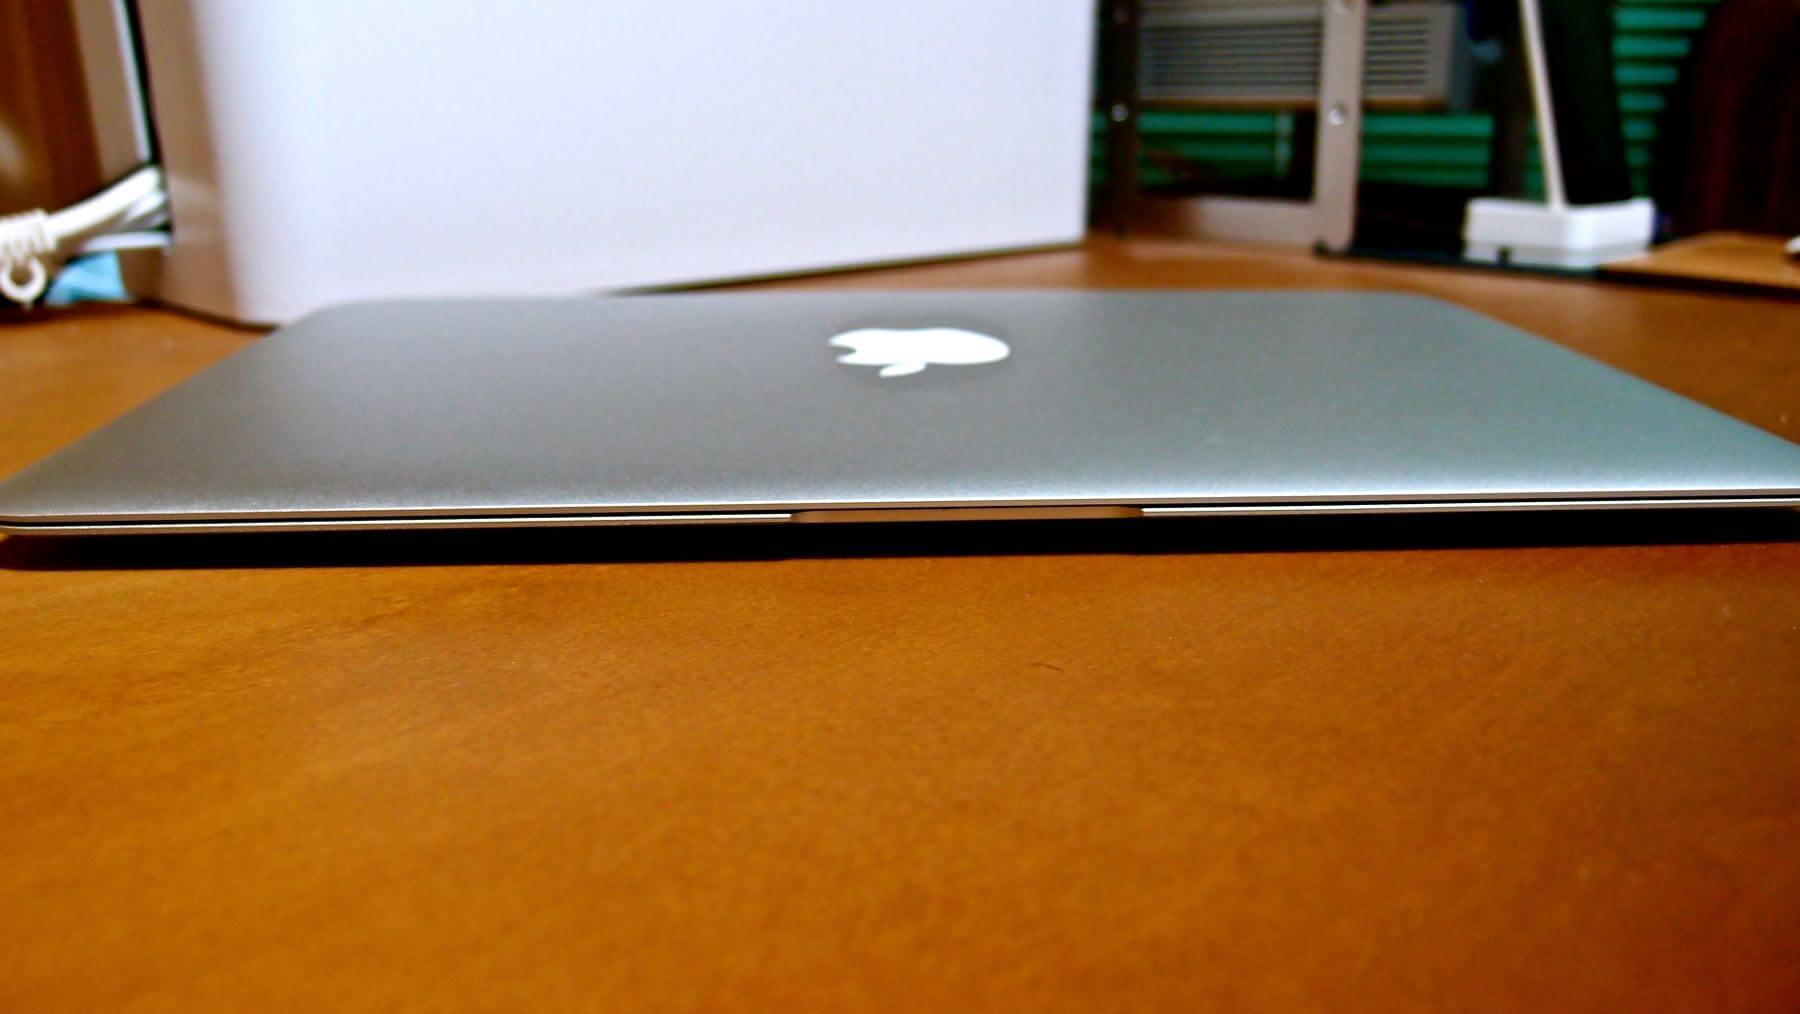 04 MacBook Air2013 Mid 11inch